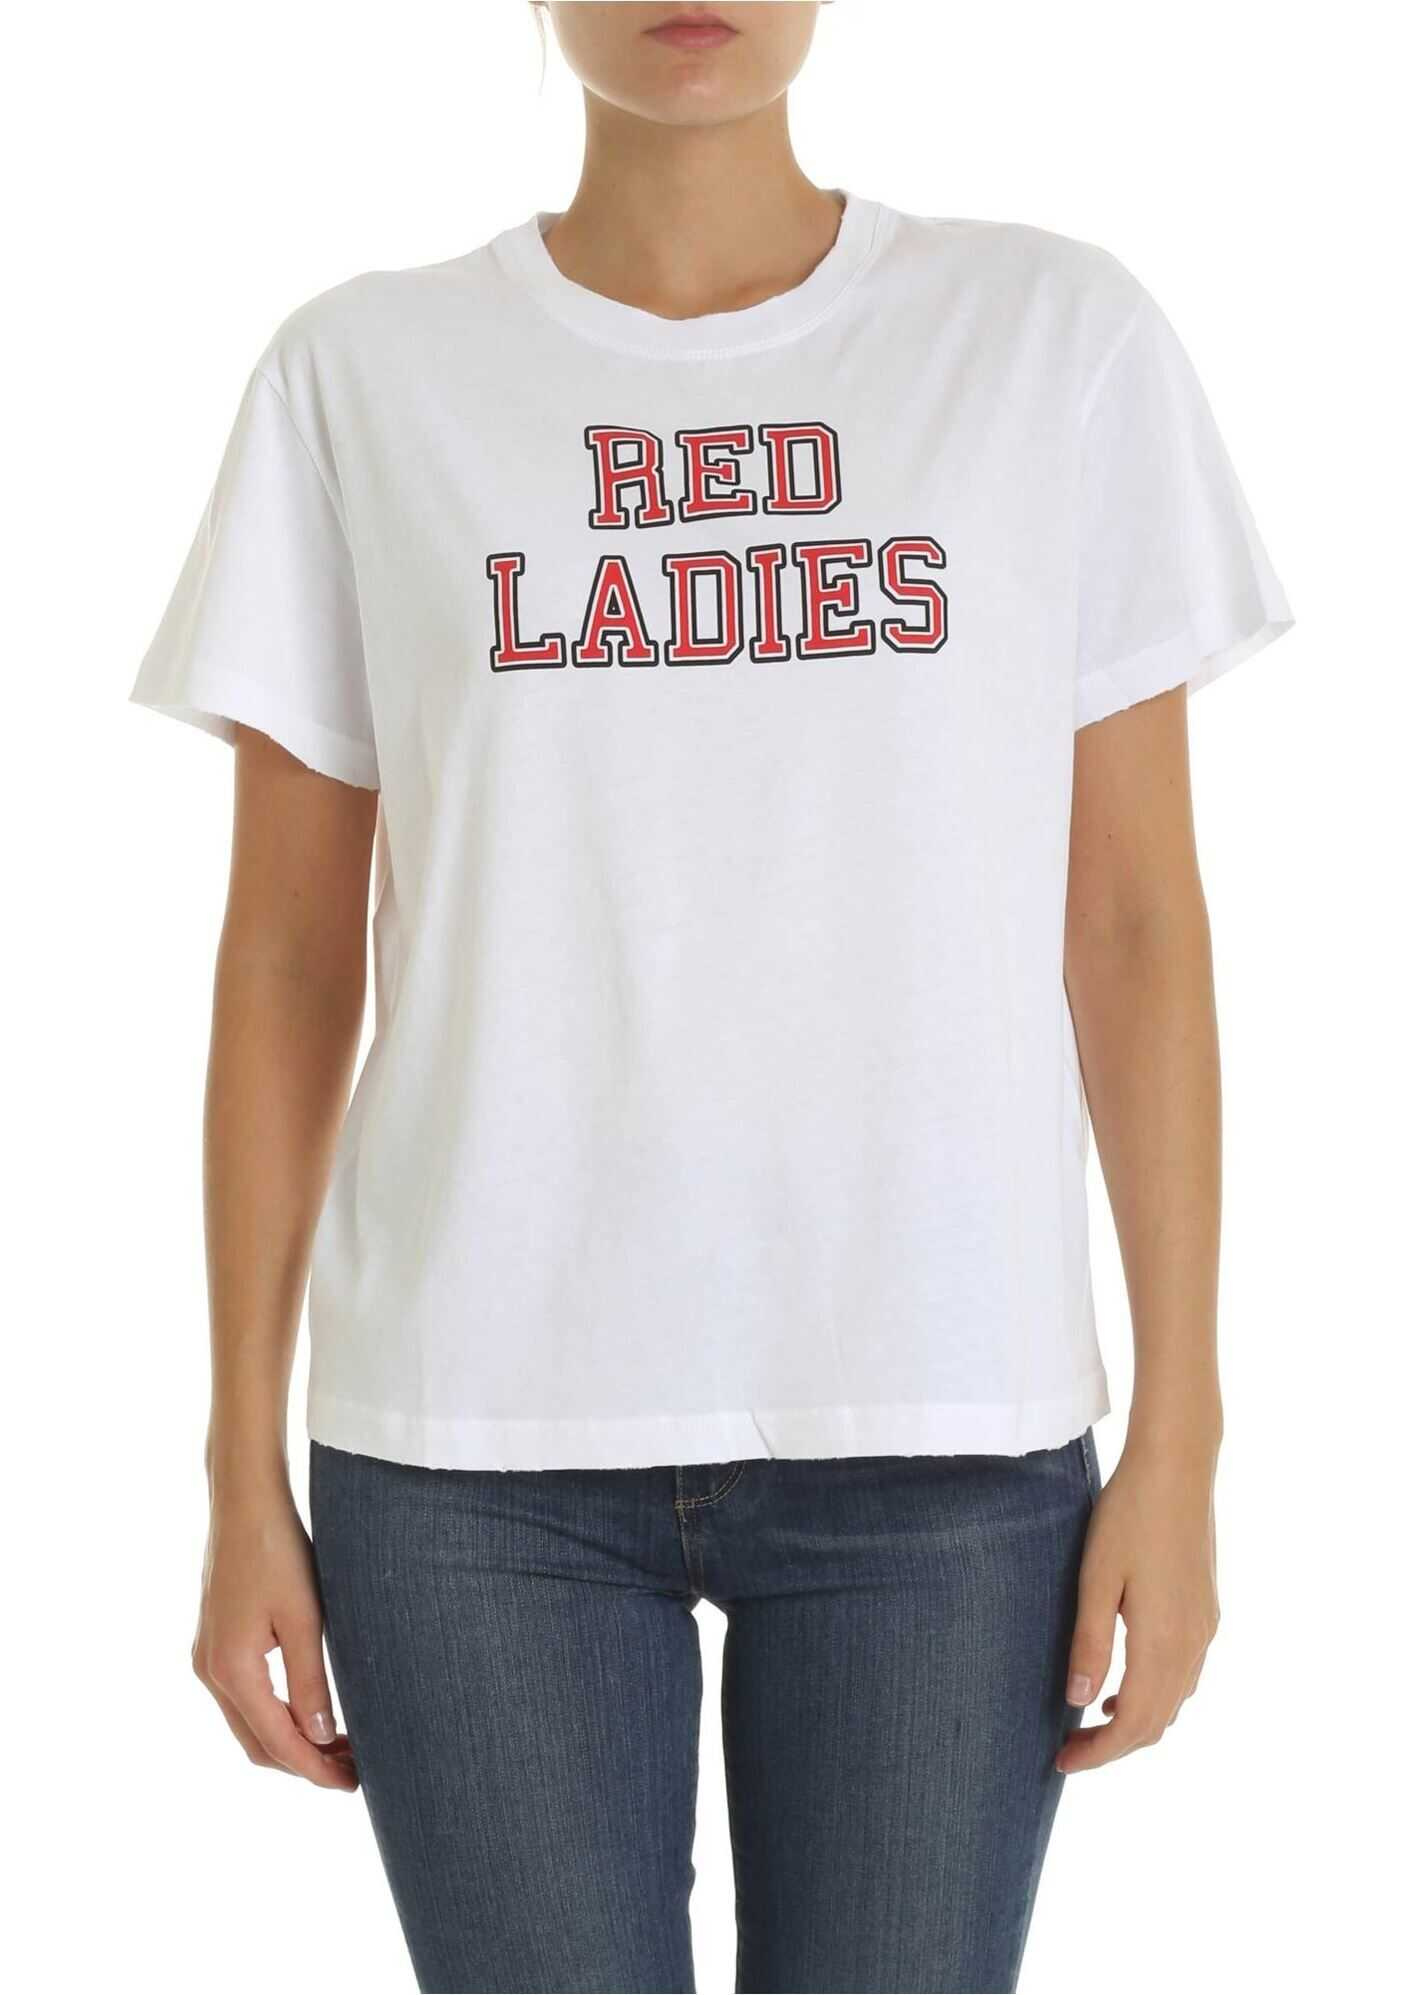 Red Ladies T-Shirt In White